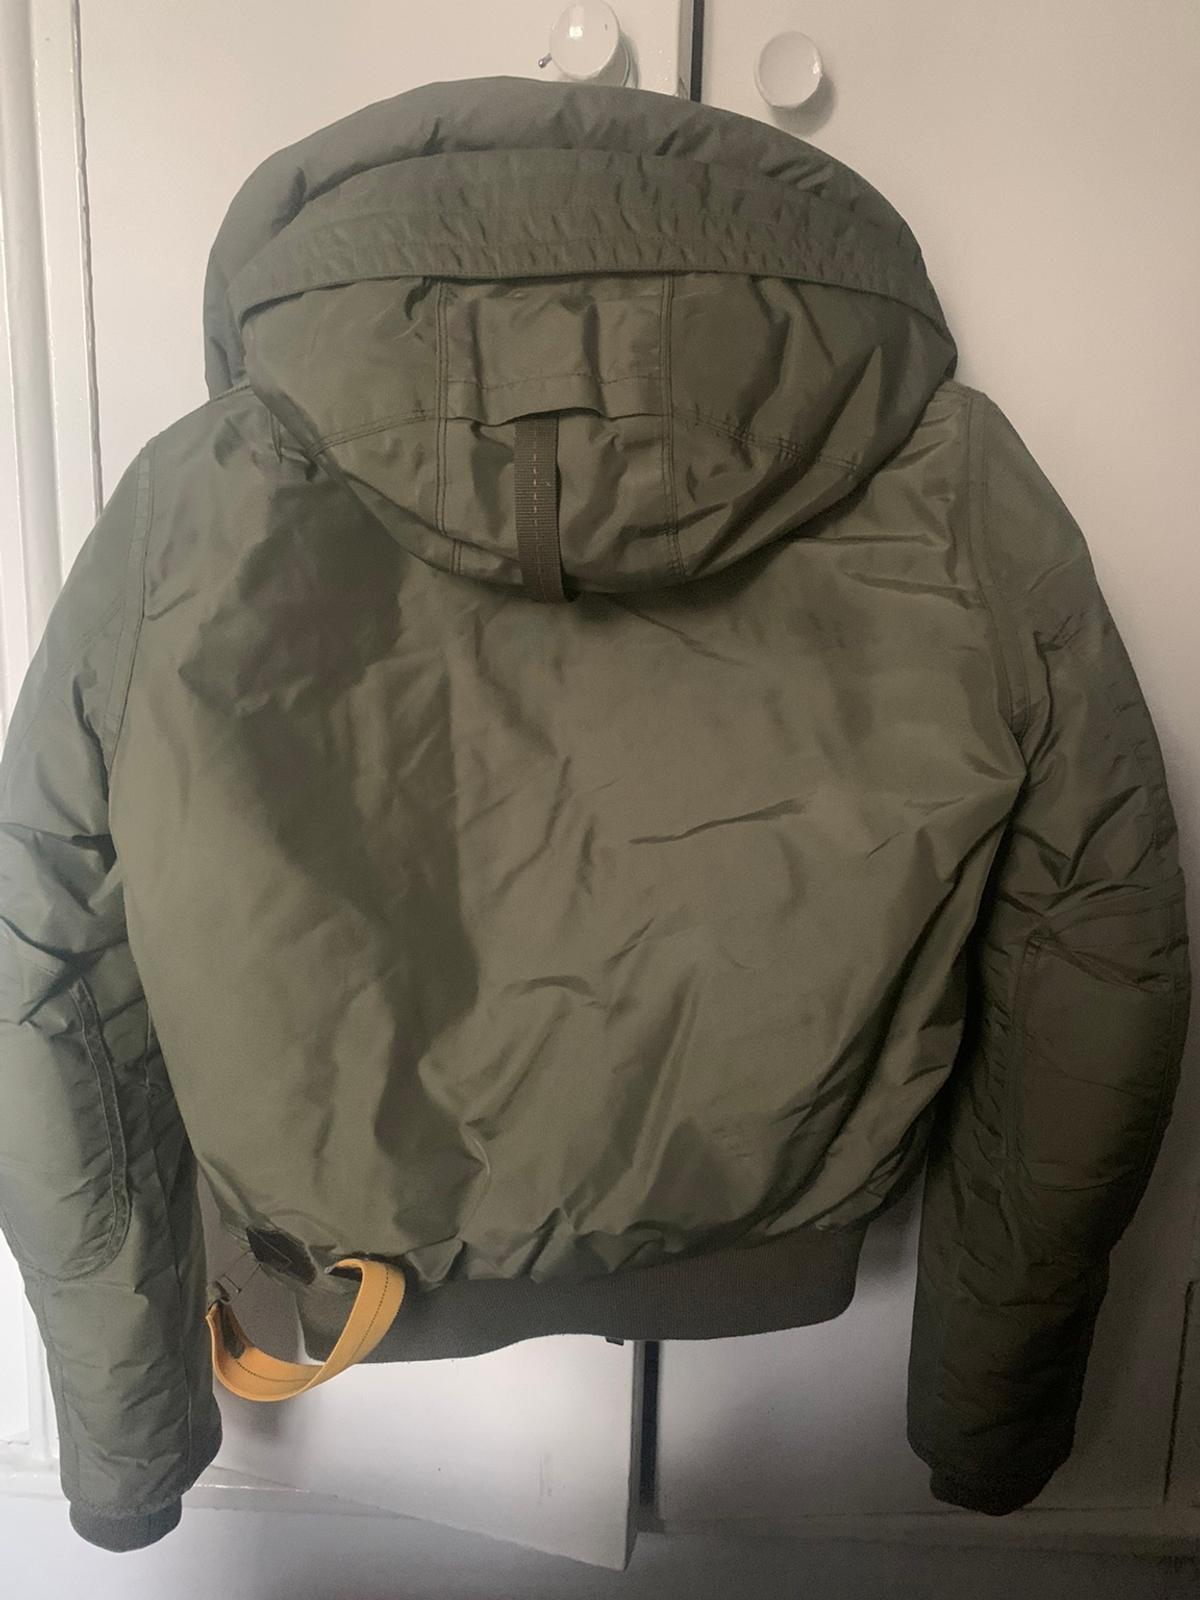 Parajumper Khaki Green Gobi Base Coat Size medium women's (will fit around a size 10) Only had for a year, is in perfect condition Authenticity check is available upon request Retail price is now £610 ***OPEN TO OFFERS***